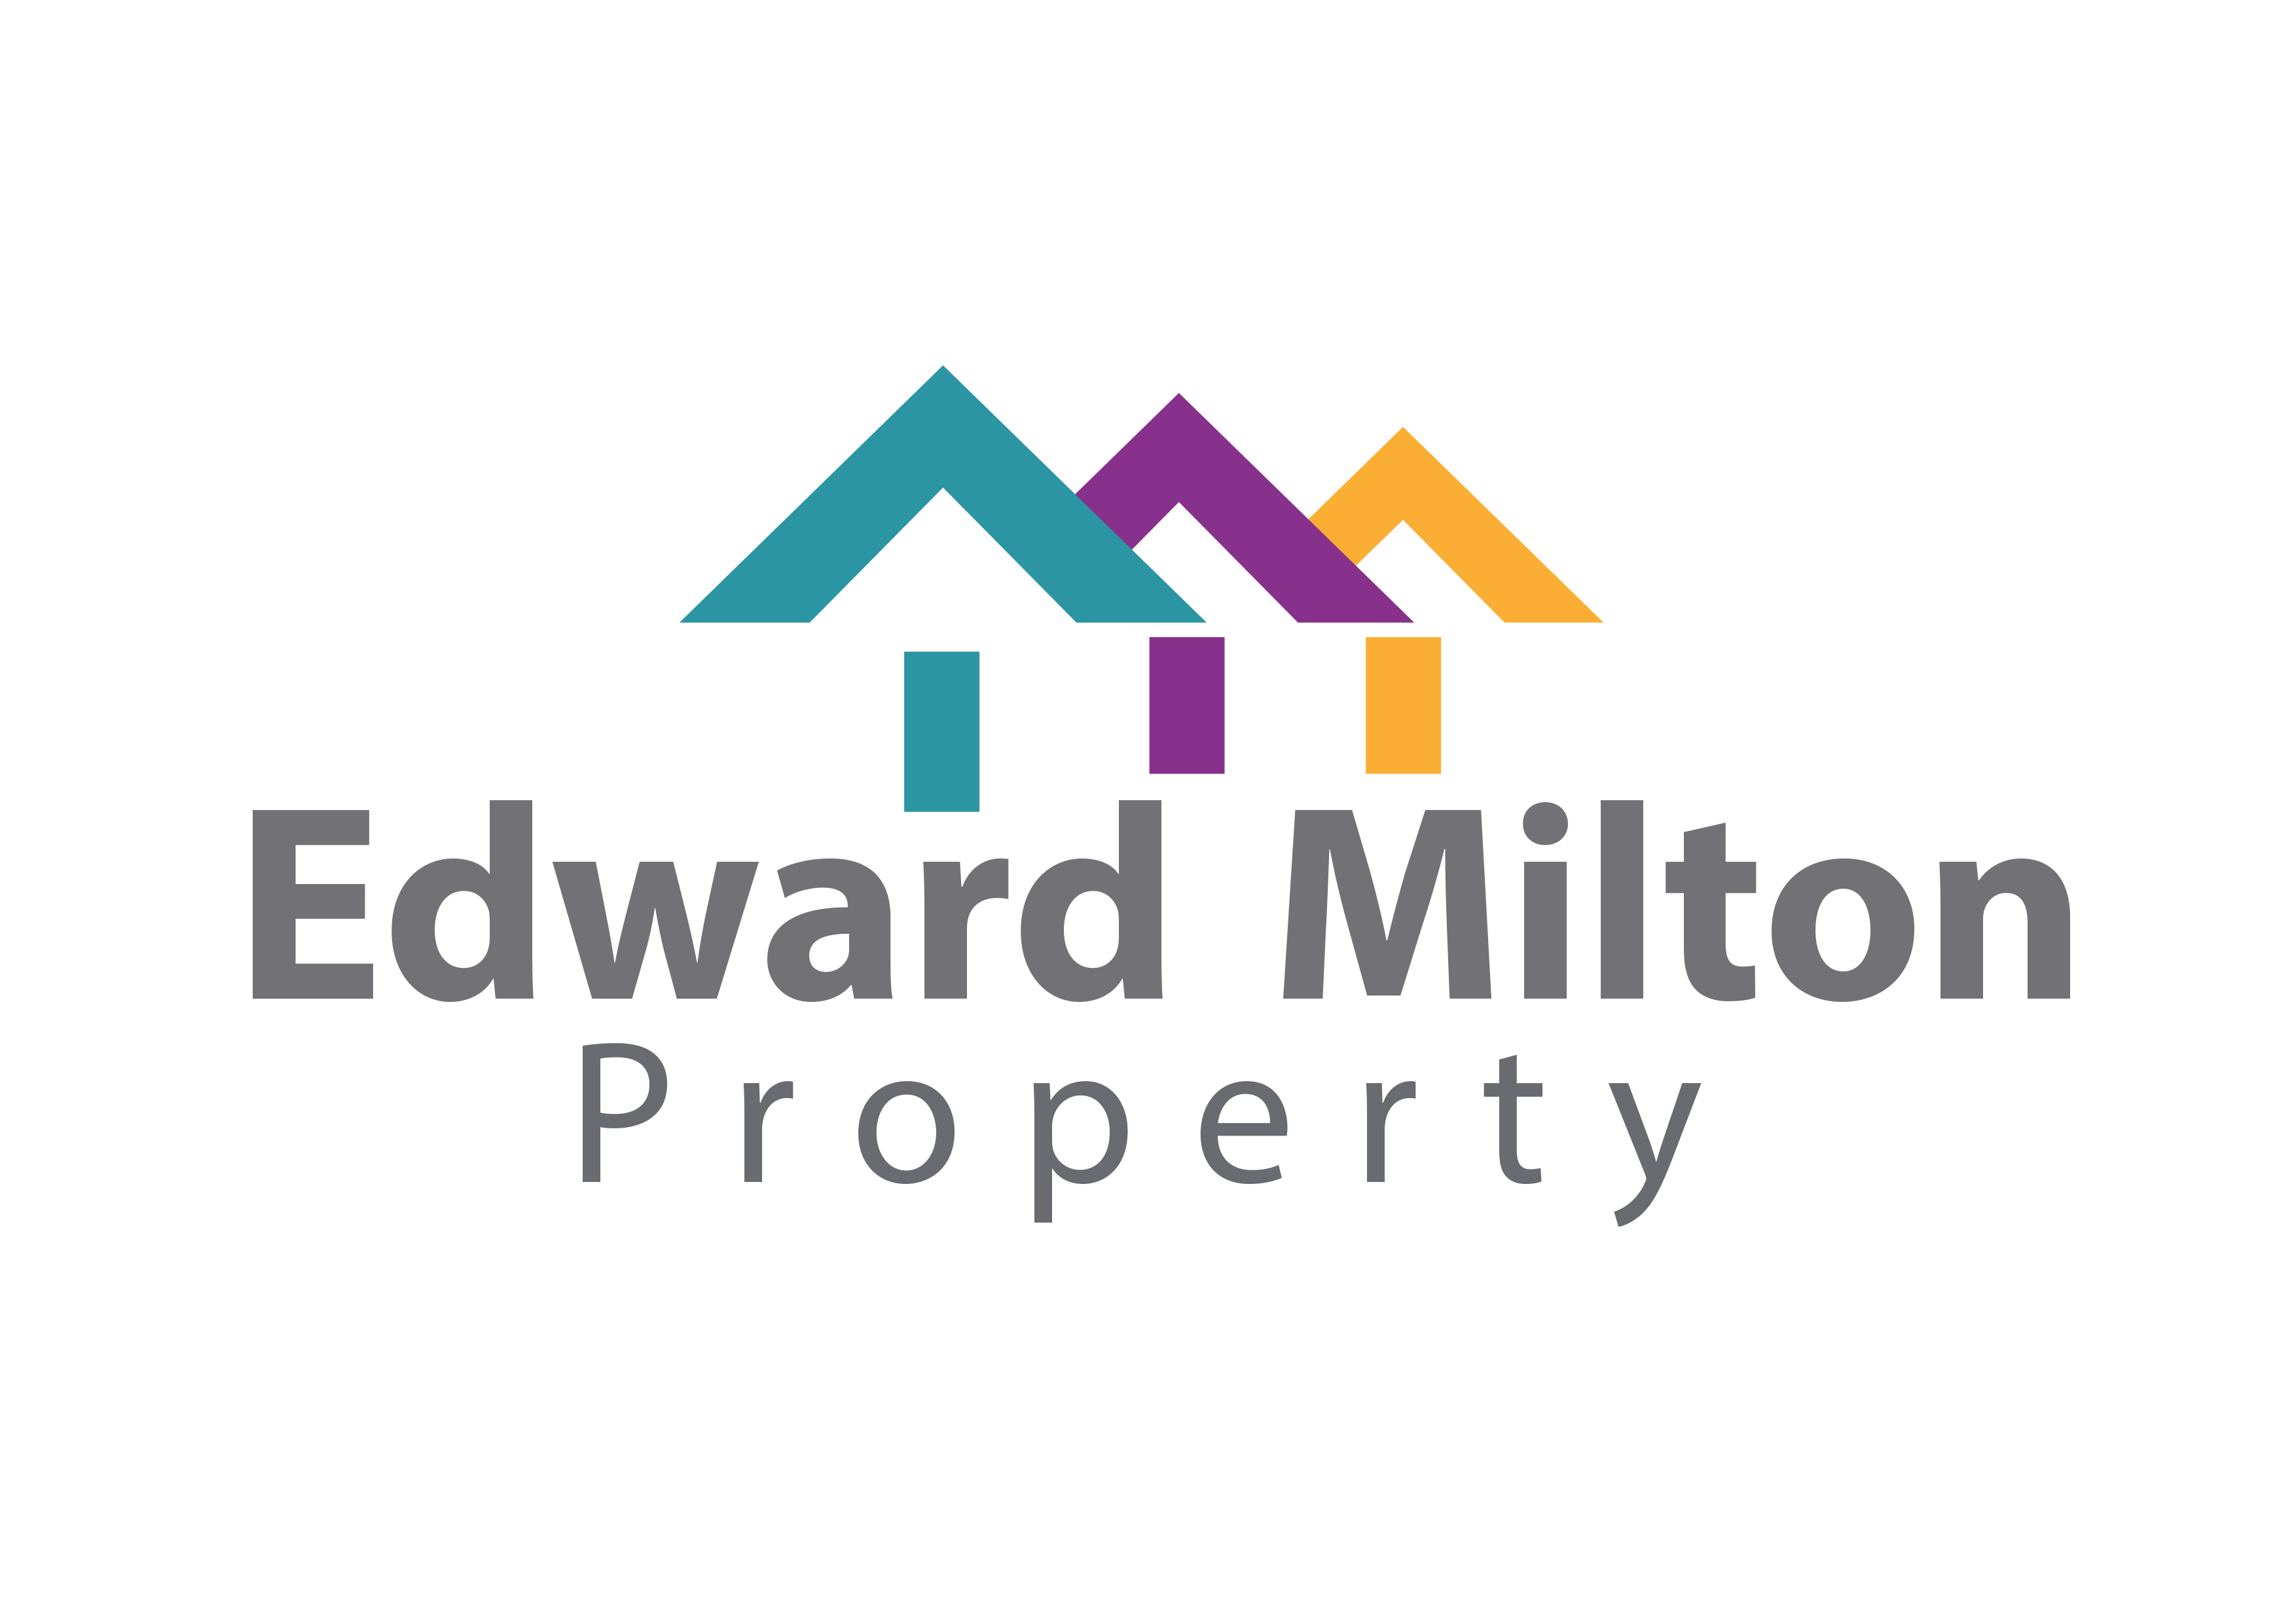 Edward Milton Property